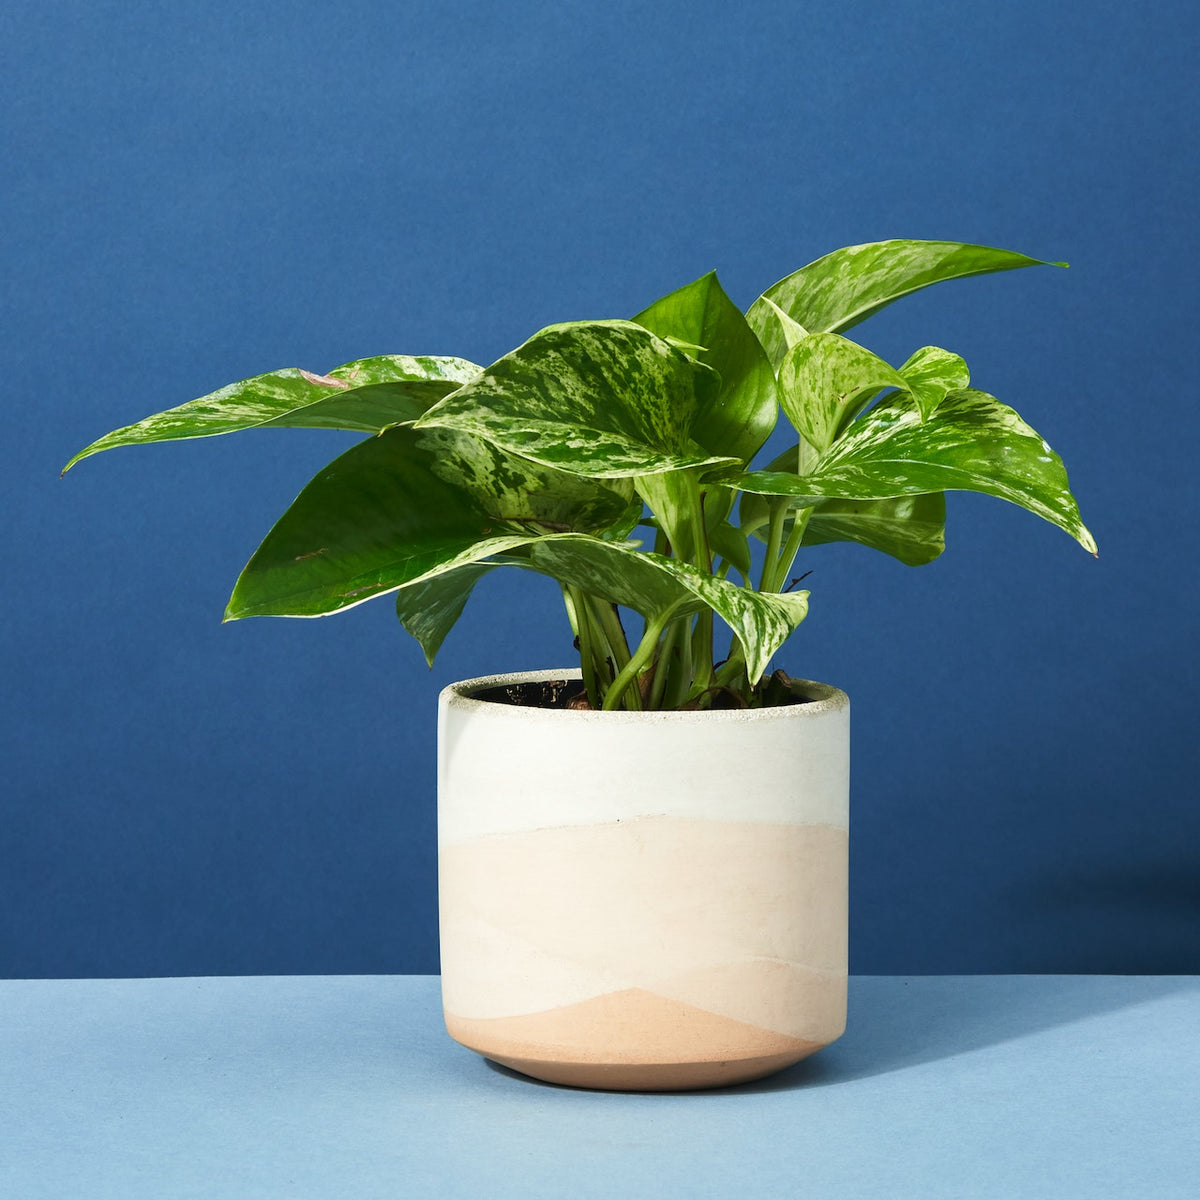 Thinking of You | Potted Plant Gift